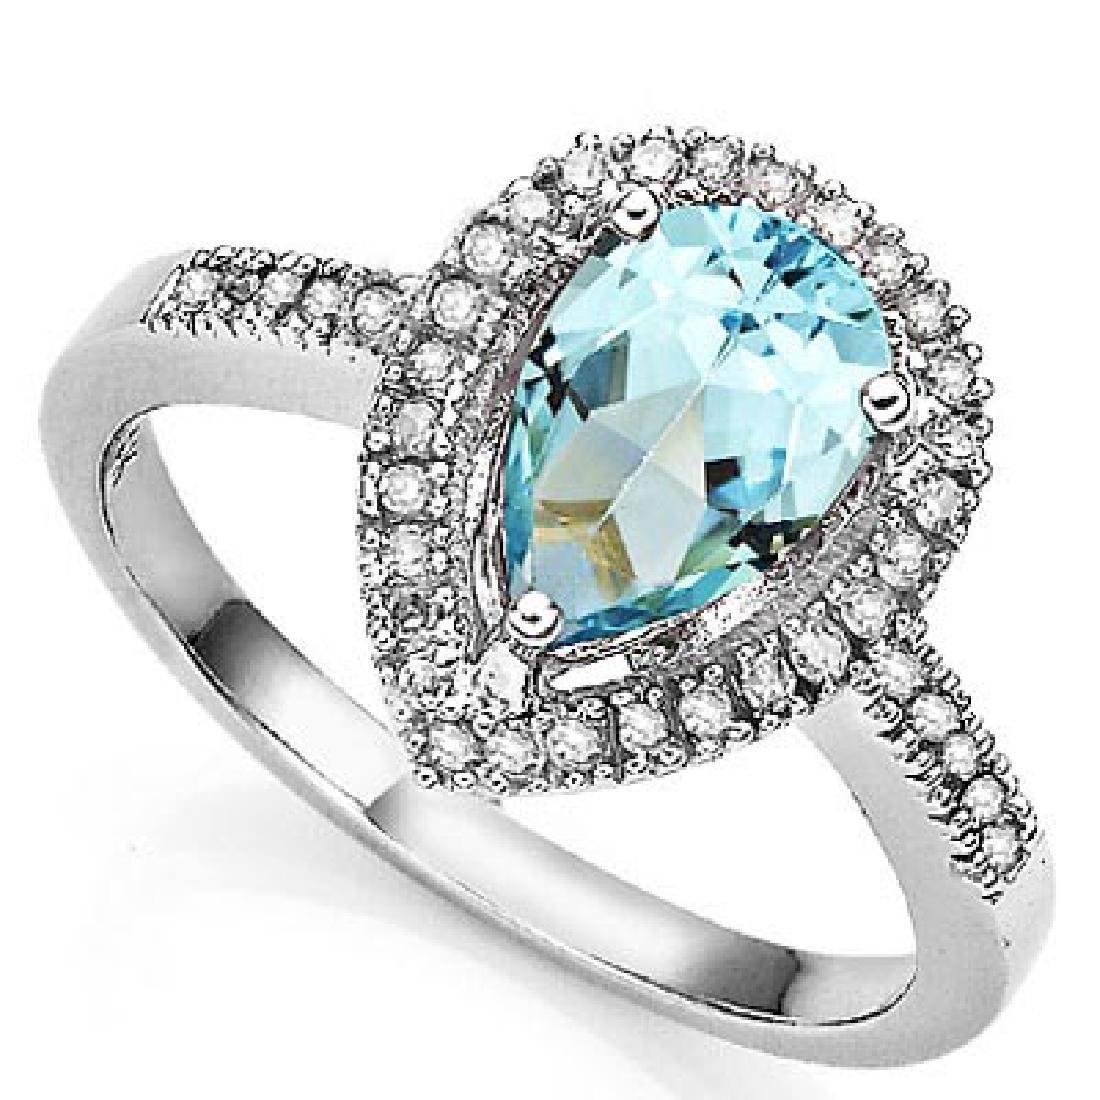 1 3/5 CARAT BABY SWISS BLUE TOPAZ & DIAMOND 925 STERLIN